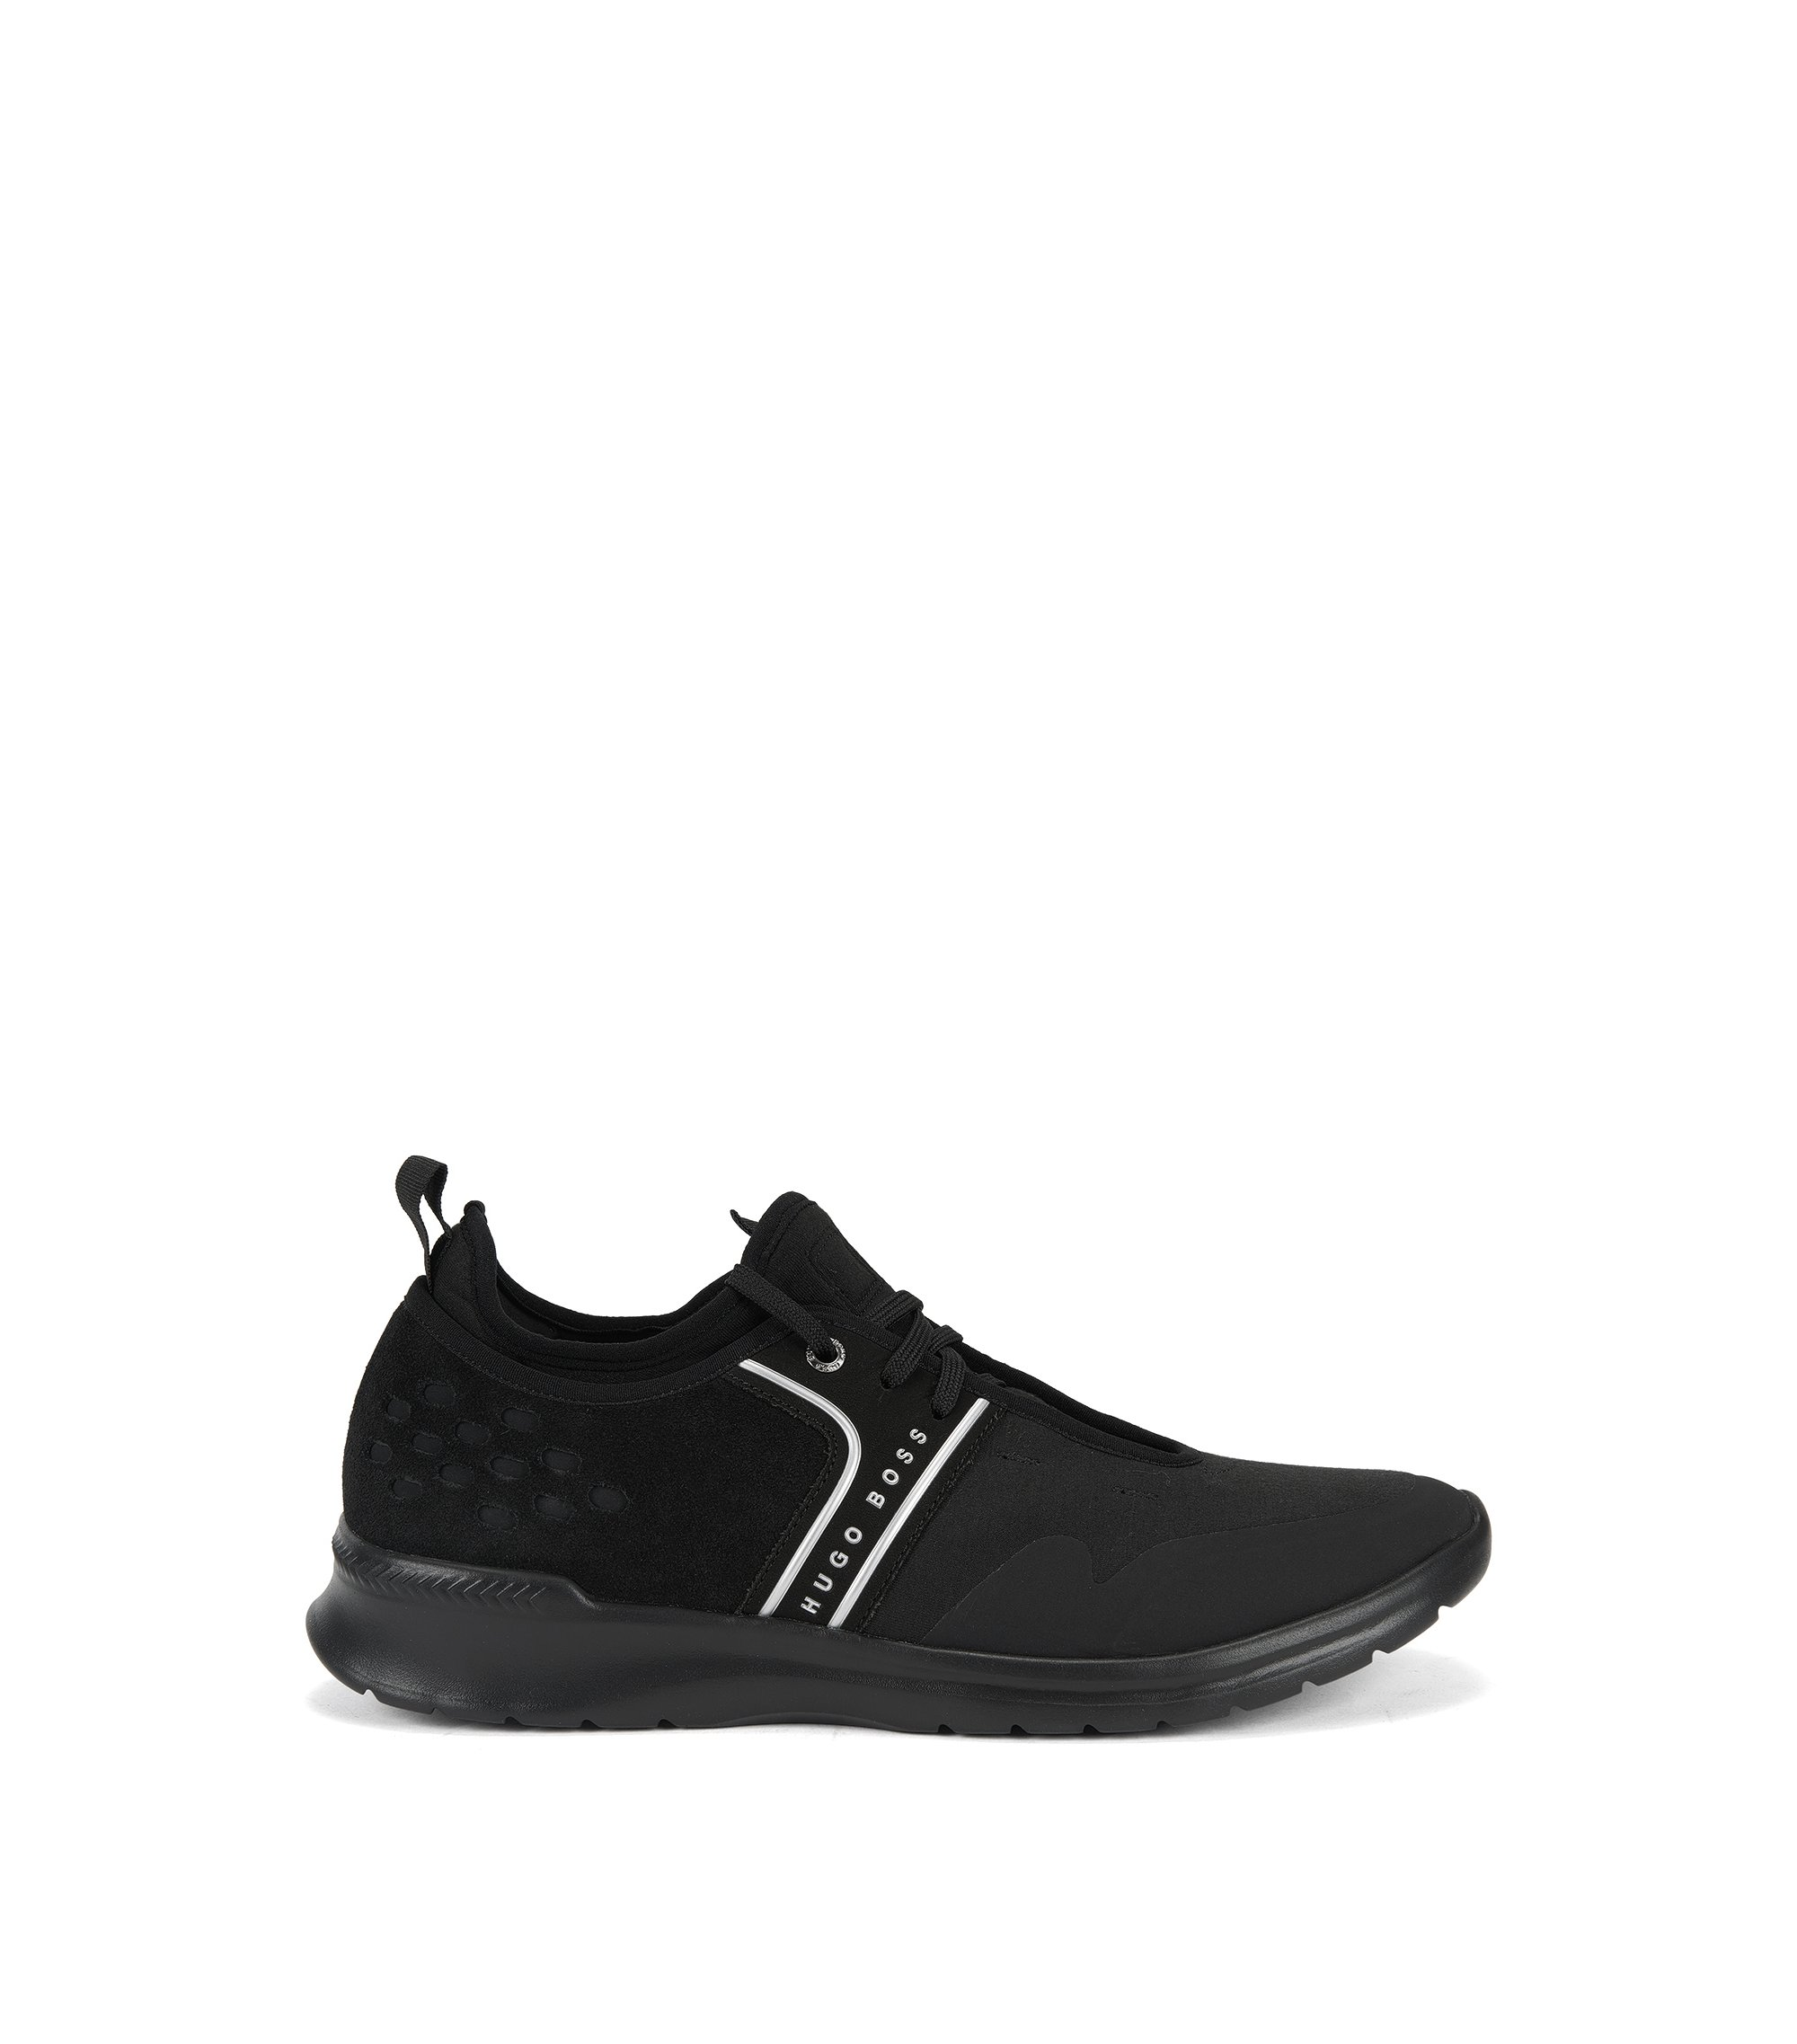 High-Performance Sneaker | Extreme Runn Mxjs, Black